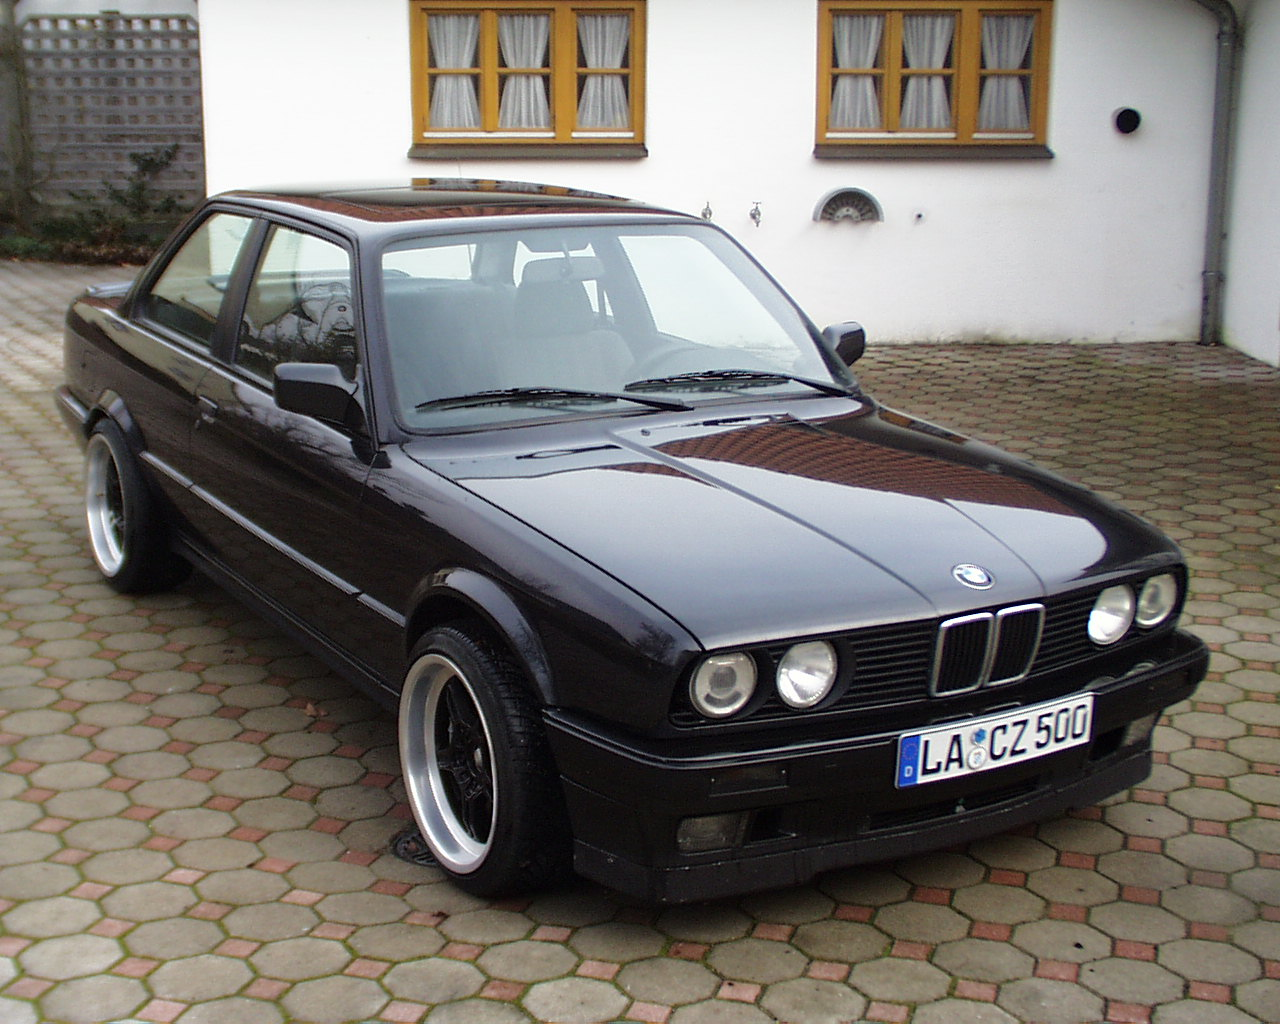 1990 Bmw 3 series coupe (e30) - pictures, information and ...